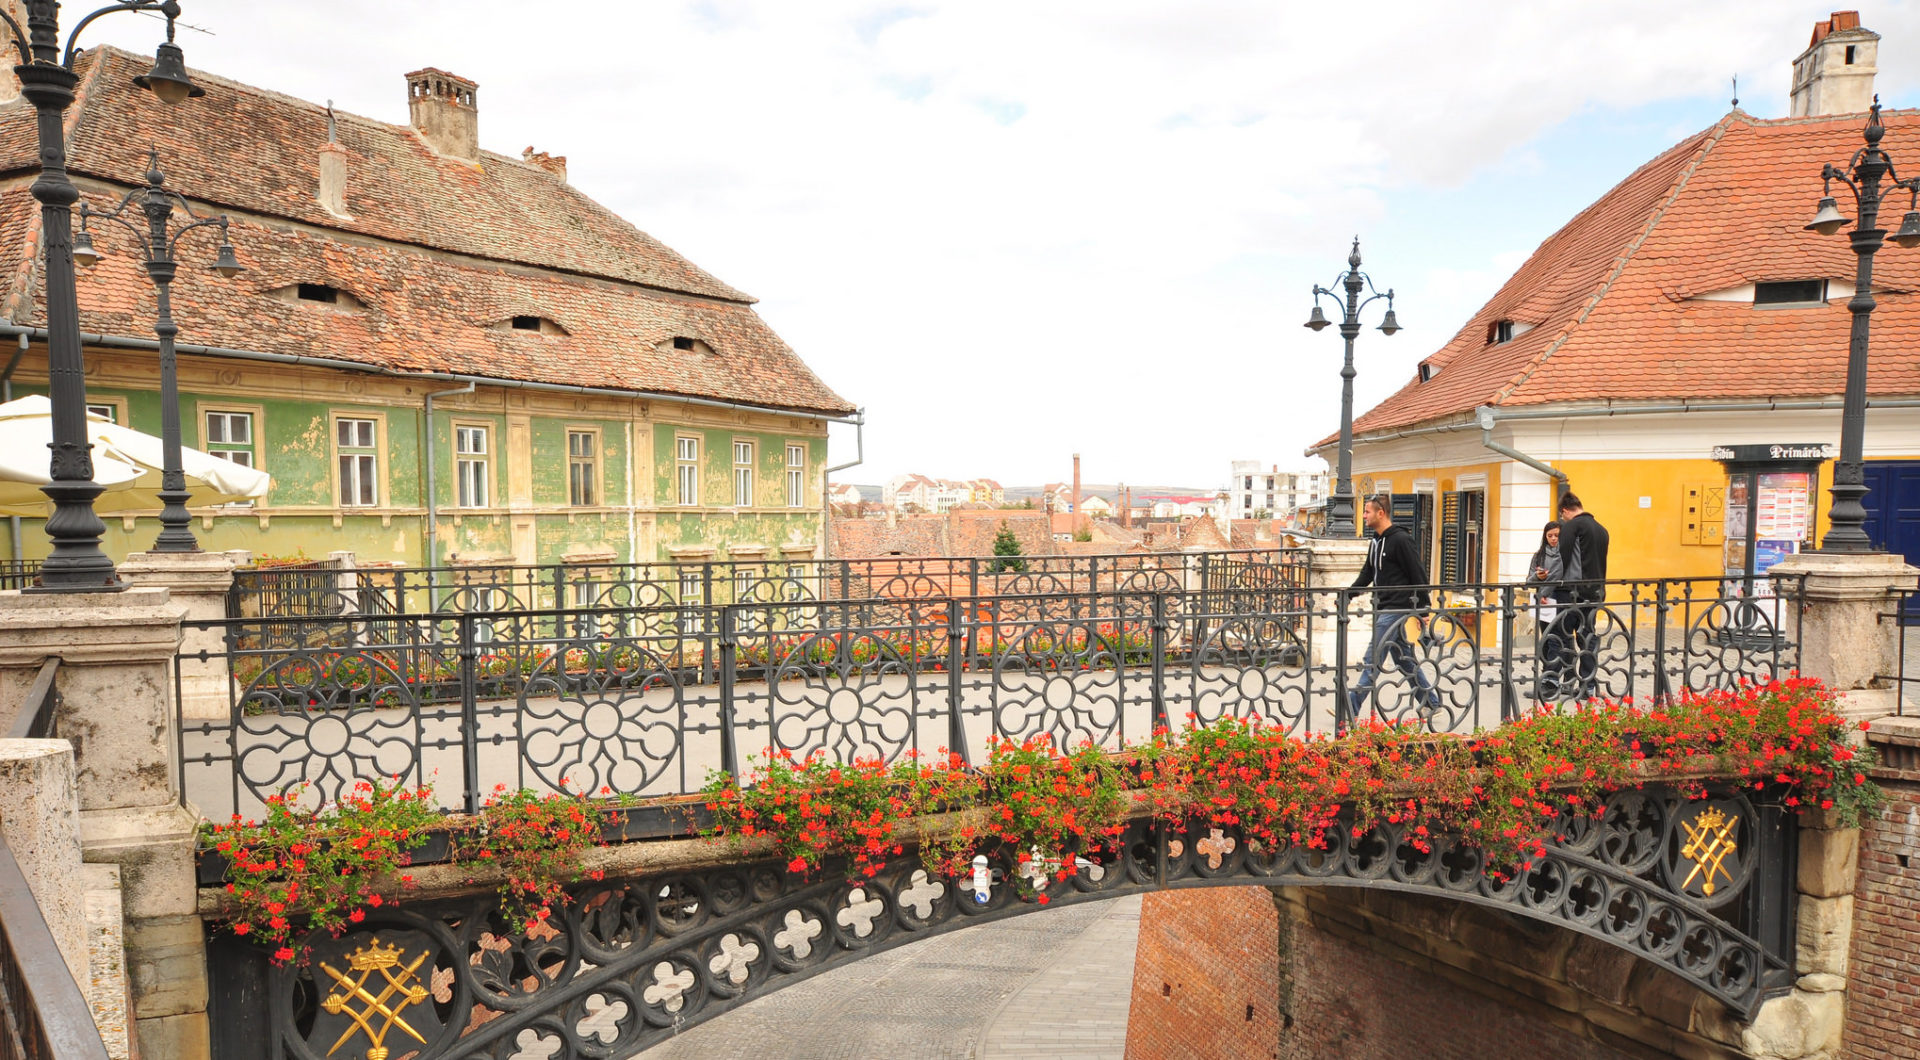 Sibiu Or Seebiu From Houses With Eyes To Political Protests